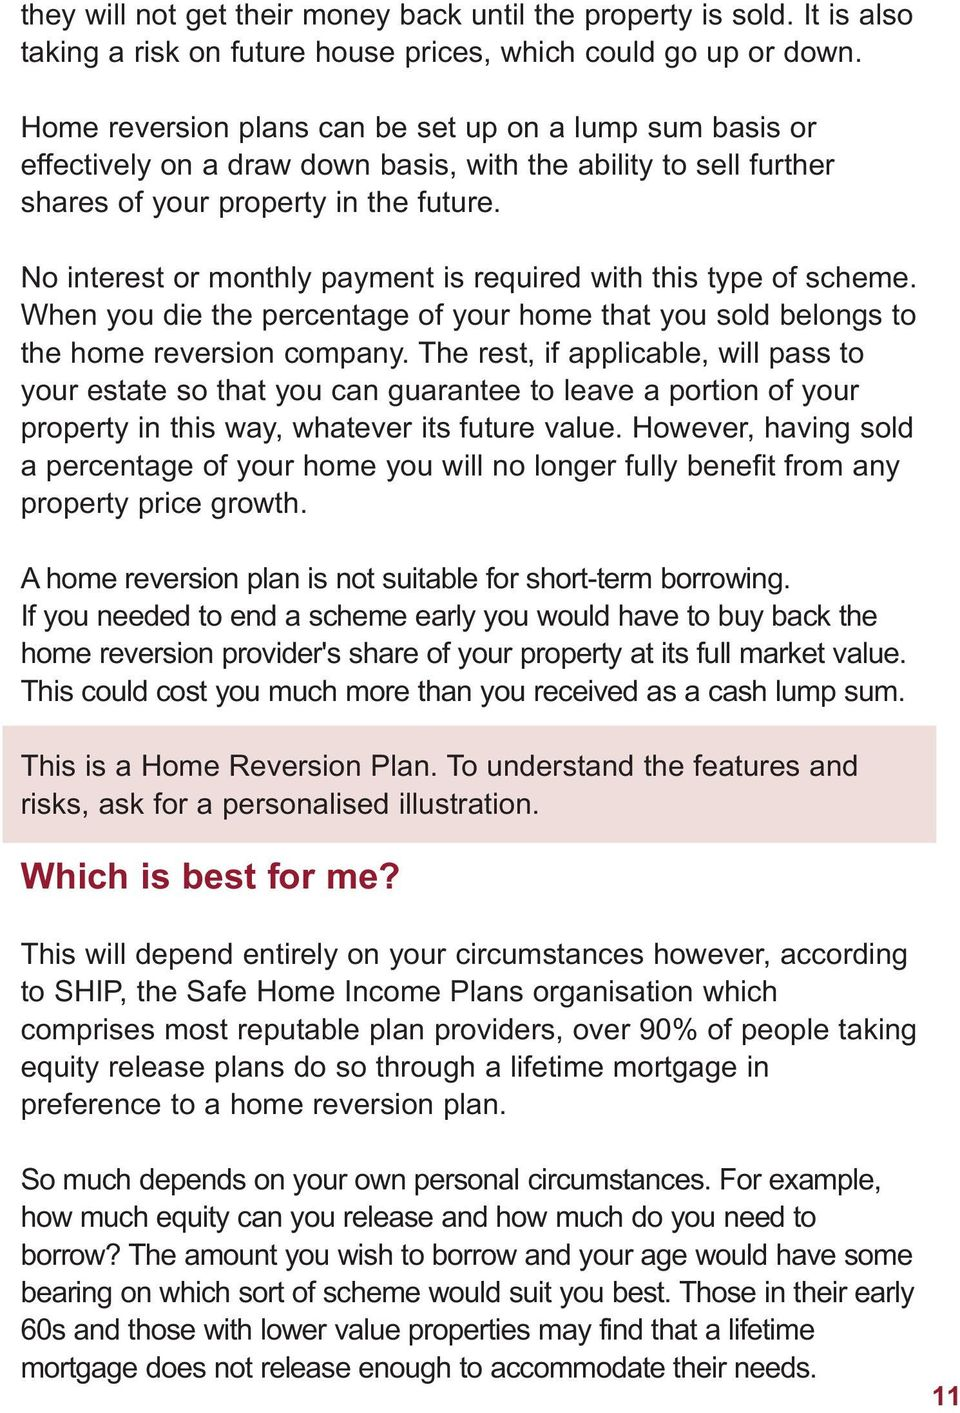 No interest or monthly payment is required with this type of scheme. When you die the percentage of your home that you sold belongs to the home reversion company.